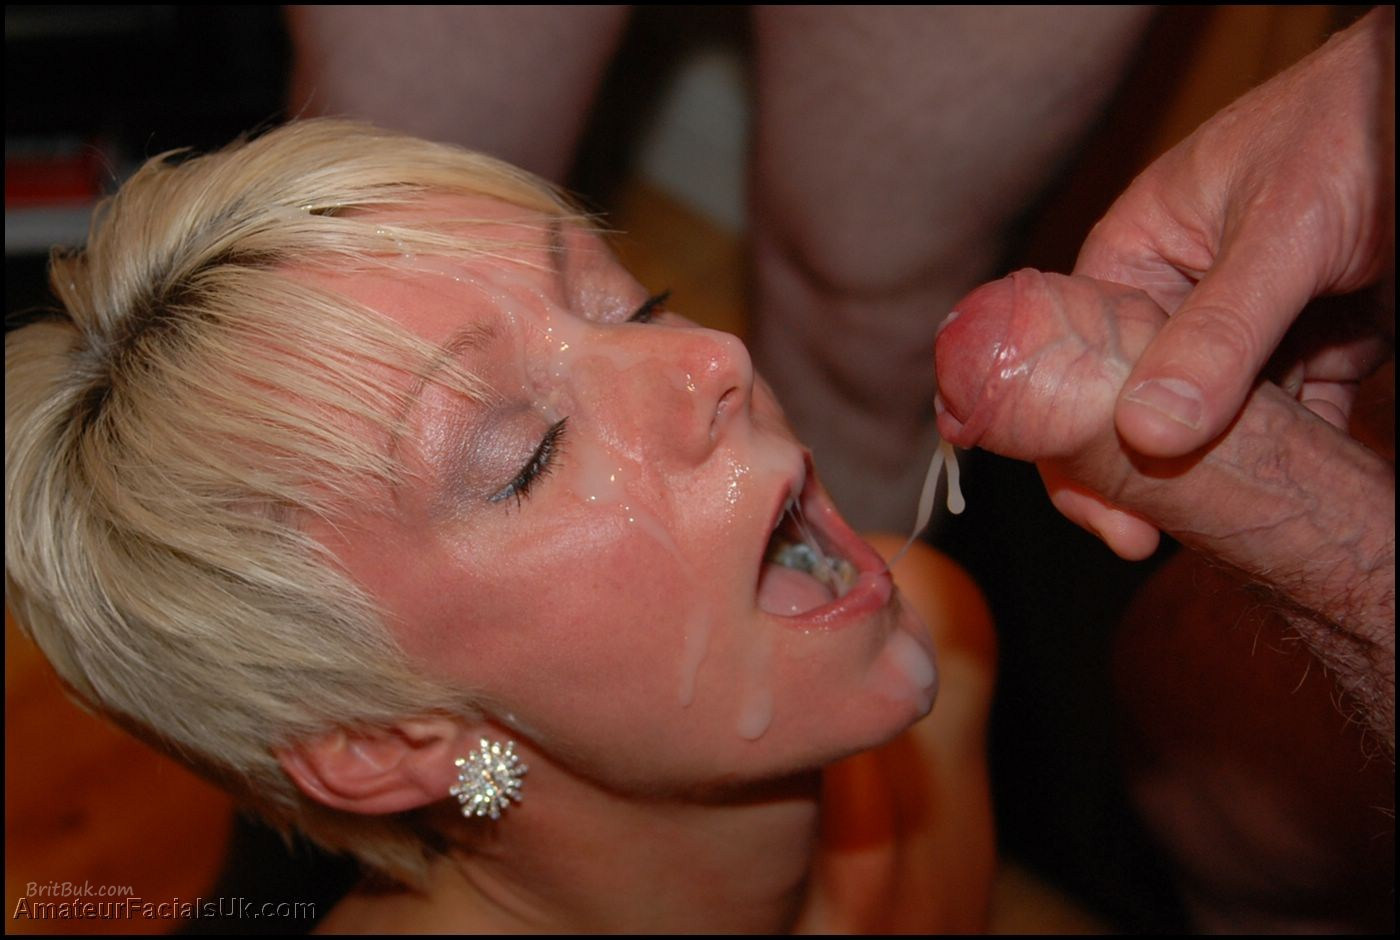 Jade british bukkake queen cum